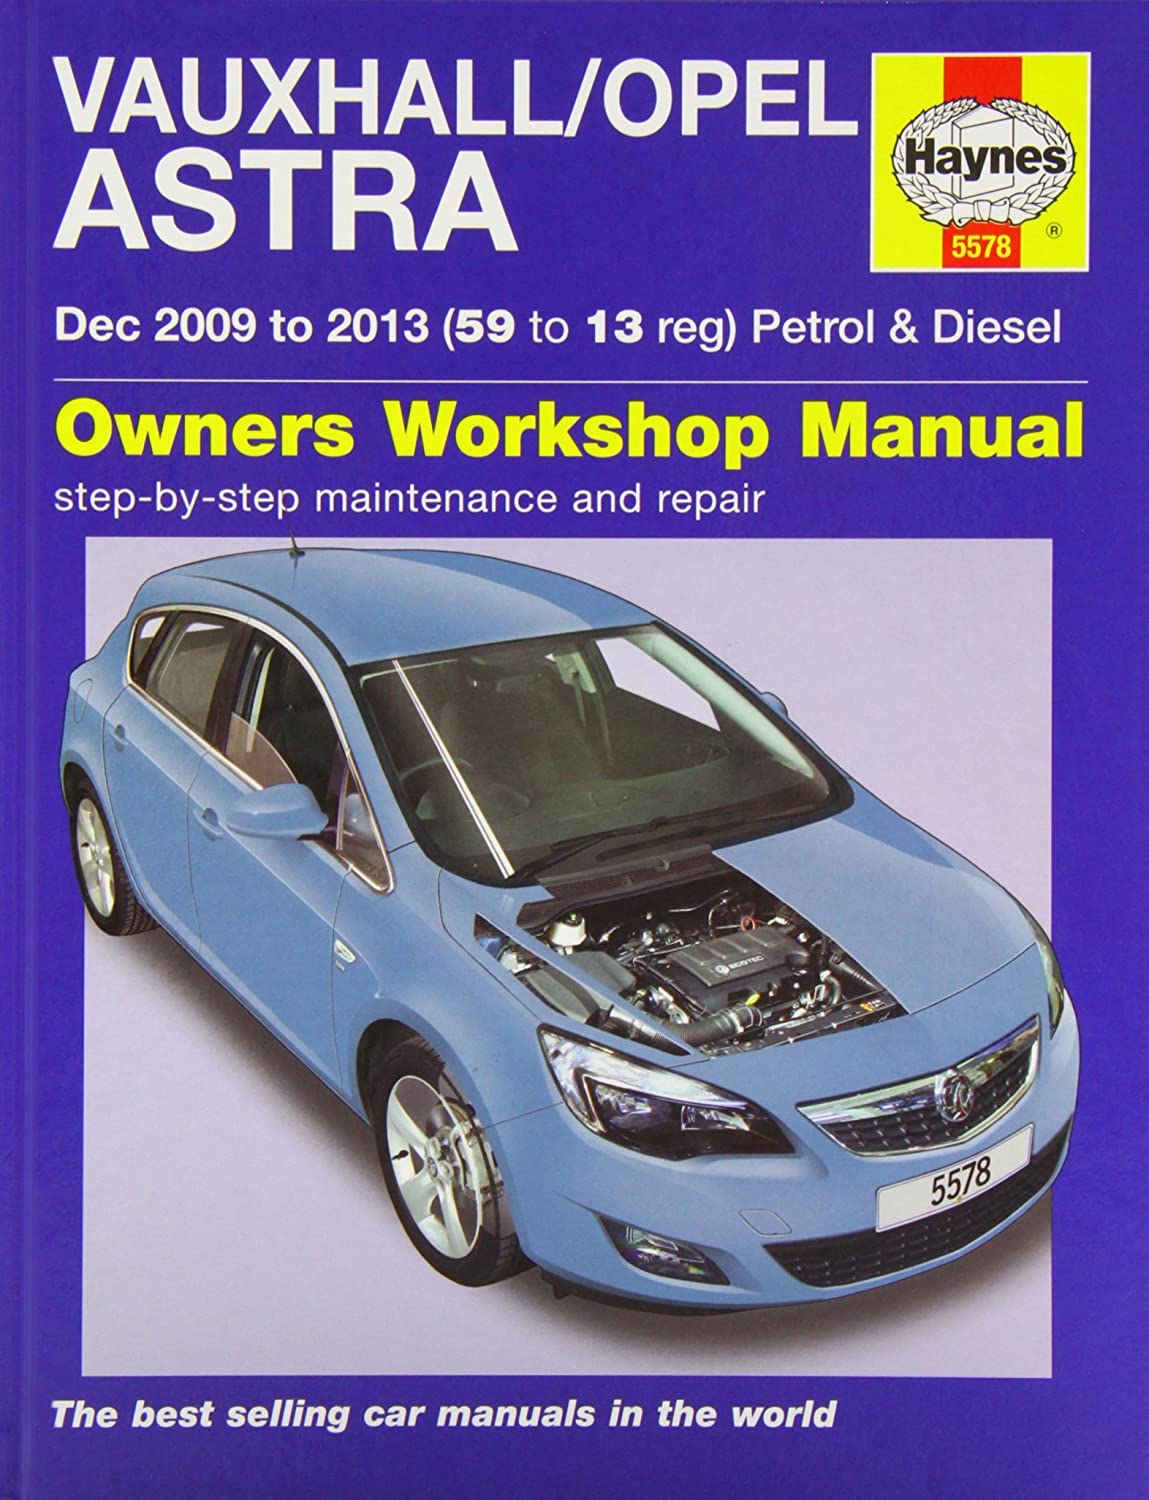 service manual vauxhall astra free owners manual u2022 rh wordworksbysea com manual opel astra f caravan manual opel astra f 1997